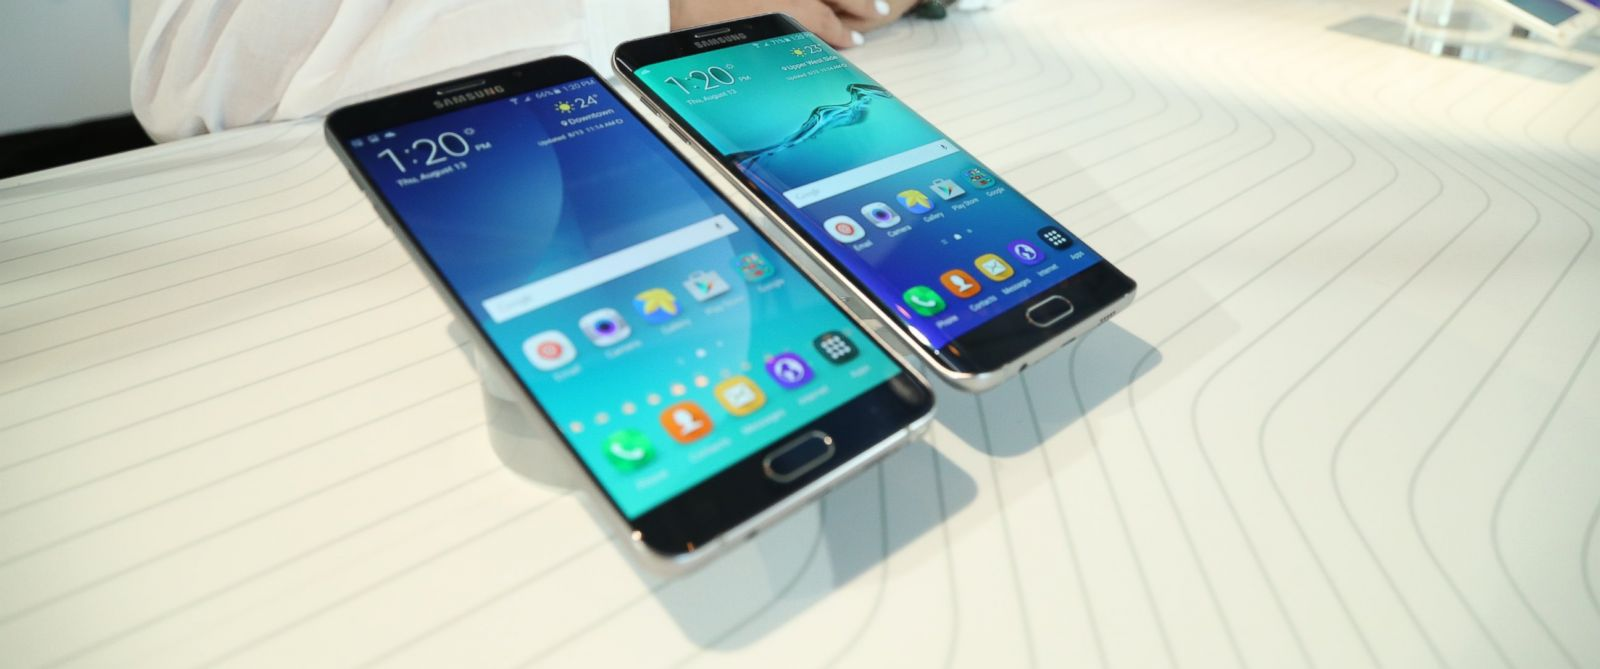 PHOTO: The Samsung Galaxy Note5 and S6 Edge+ phones on display in New York City.